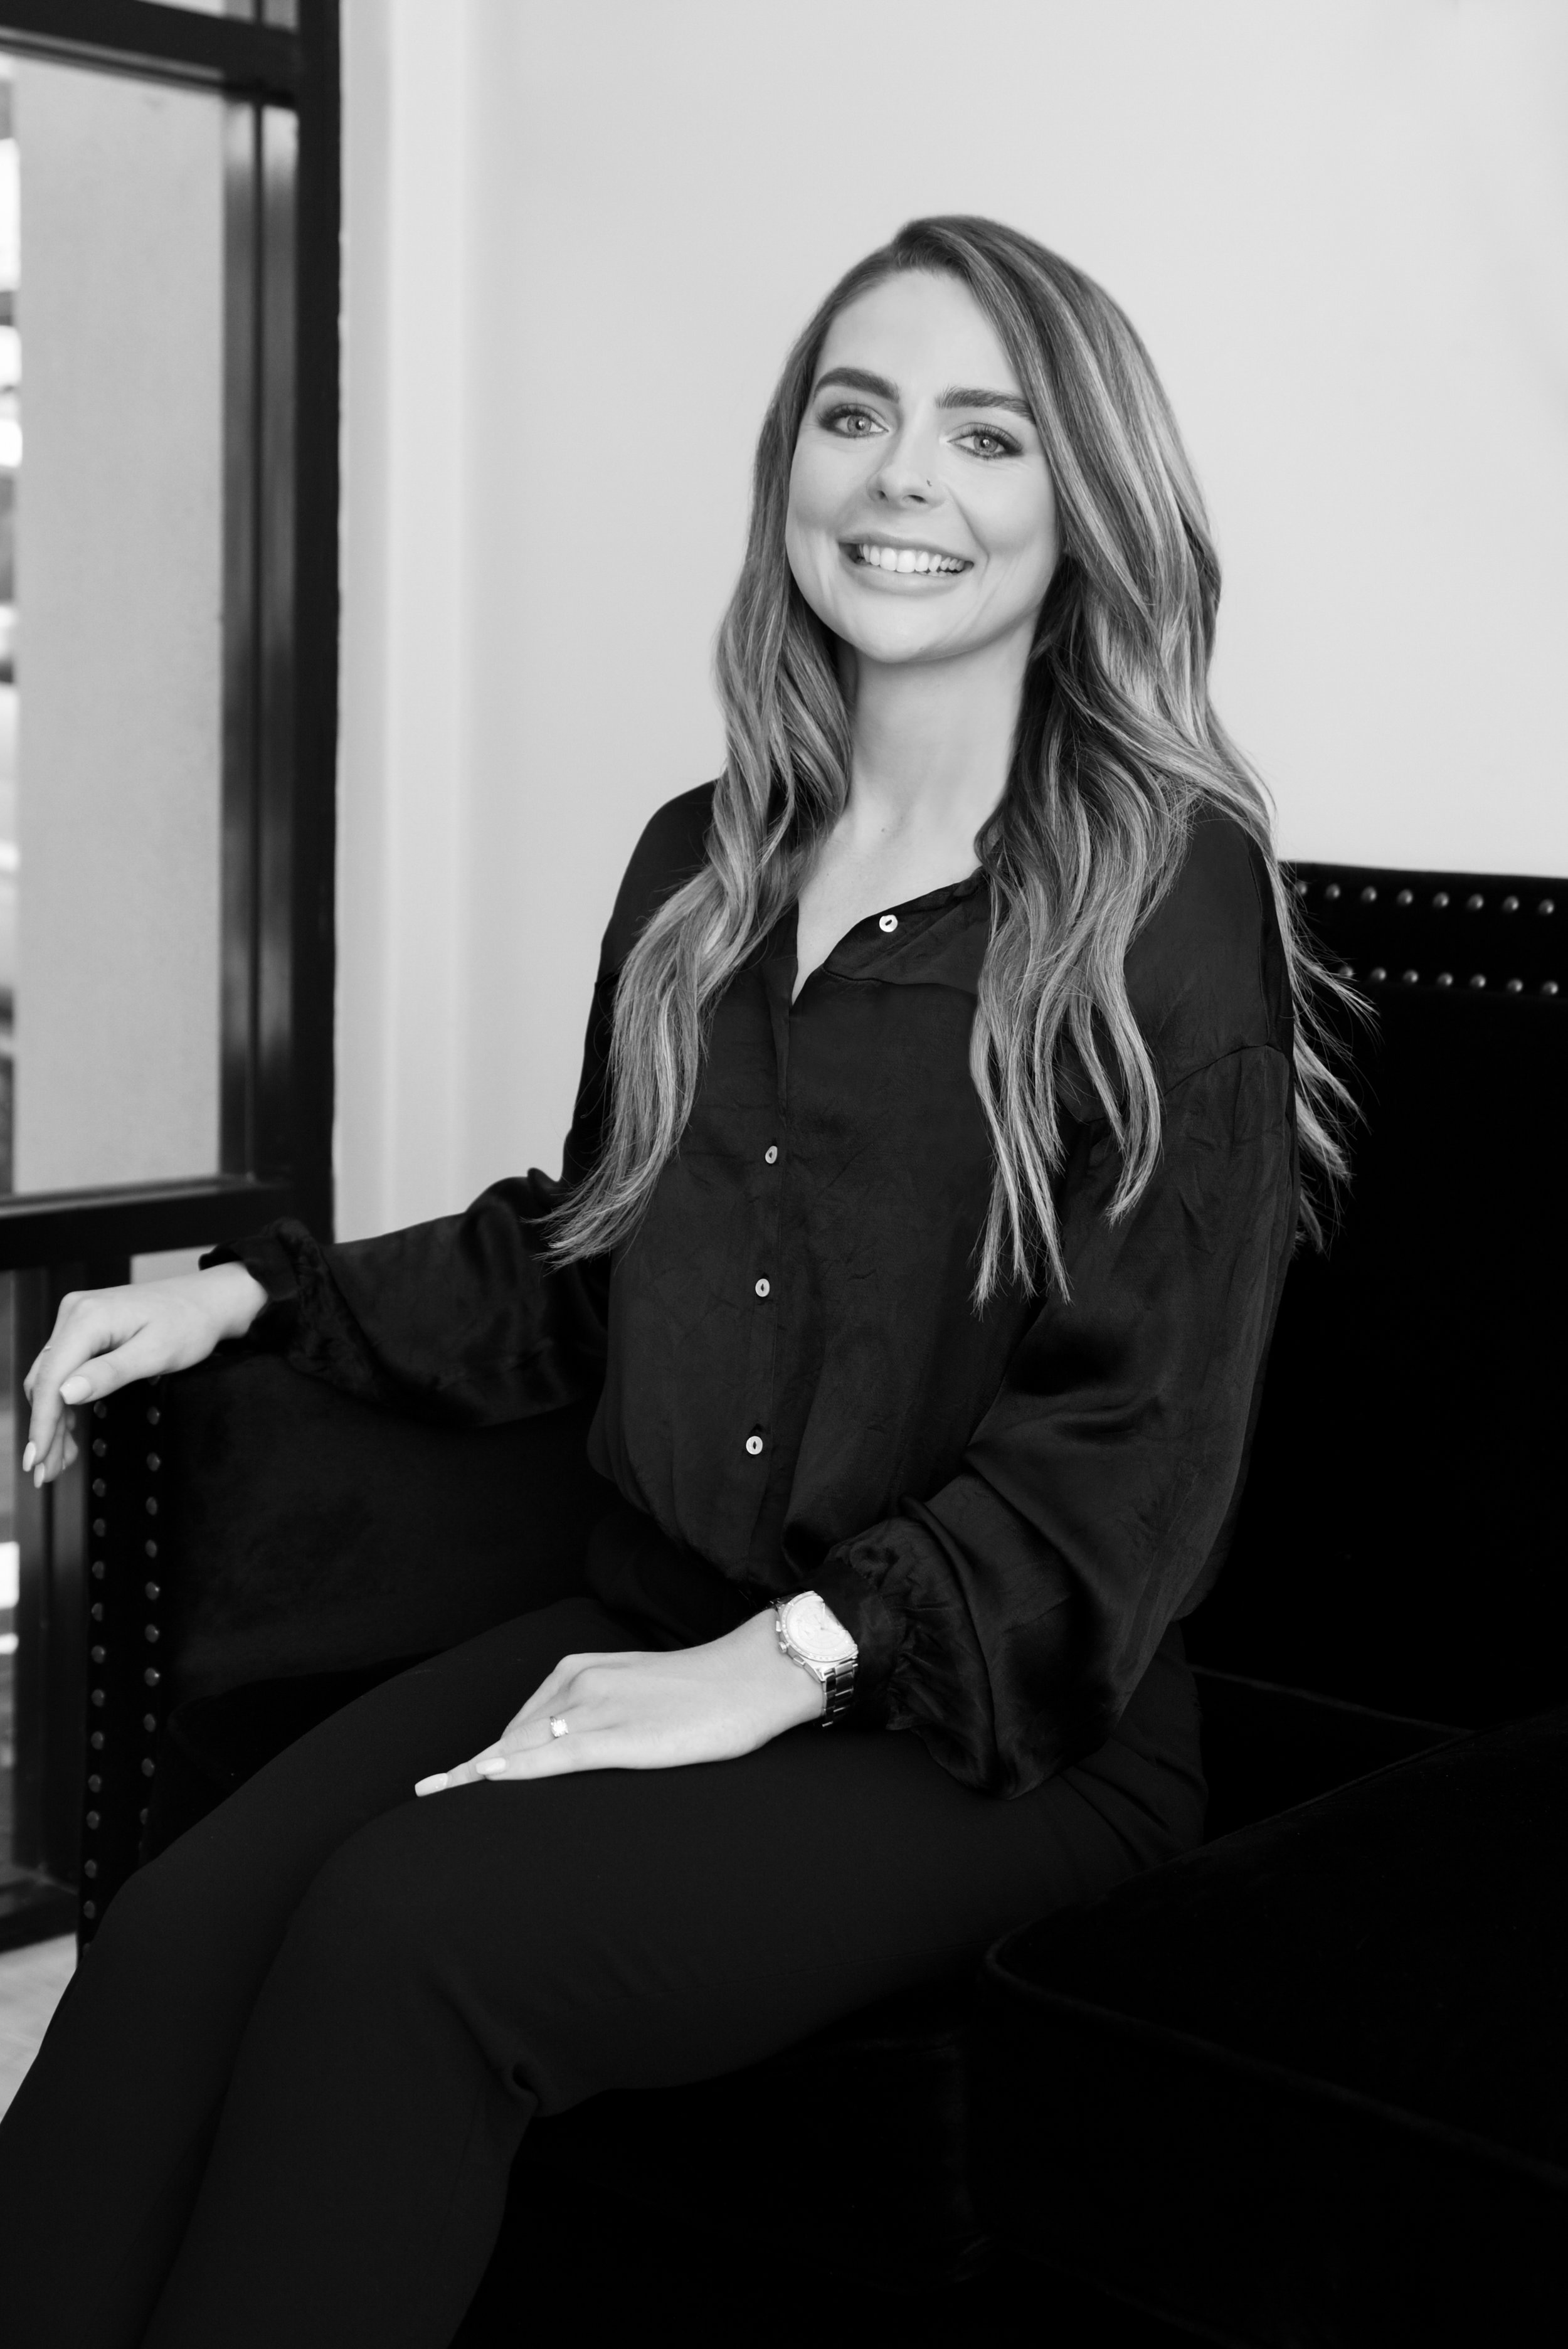 MEET RACHEAL - ADVANCED EYEBROW ARTIST & COSMETIC TATTOOISTFOUNDER OF THE YOUR EYES ONLY BROW STUDIOMy brow obsession in began 2009 in a little town just out of Auckland. I developed an eye for giving woman the perfect brow arch that lifted the eyes to wipe years off their look.When I first begun - the dreaded 90's brow phase was in full force - it was my personal mission to help women try and regrow their beautiful arches so their brows were full again. Unfortunately, in some cases, brow hairs just don't grow back after many years of over-tweezing. I found tinting just didn't last long, so sought out the next best options for my clientele.Cosmetic tattooing at the time looked very unnatural and too dark, I was a little apprehensive about semi-permanent options until I found Microblading. I was able to create my own technique that created little hair like strokes in the eyebrows that lasted over a year.Microblading allows me to give women fabulous eyebrows - no matter what they come in with, whether it's having brows that no longer grow hair, sparse hair, patchy brows or even Alopecia suffers - no problem is too big for me.To date I have created over 2000 sets of eyebrows, and I can tell you there is no 'one-size fits all' getting the right shape to suit your age, face shape, and hair colour is paramount to achieve a long lasting natural looking result.I now travel between Australia and New Zealand for my brow clientele, and have just launched a training academy to help other aspiring brow artist learn and grow.There's no stopping this brow empire!